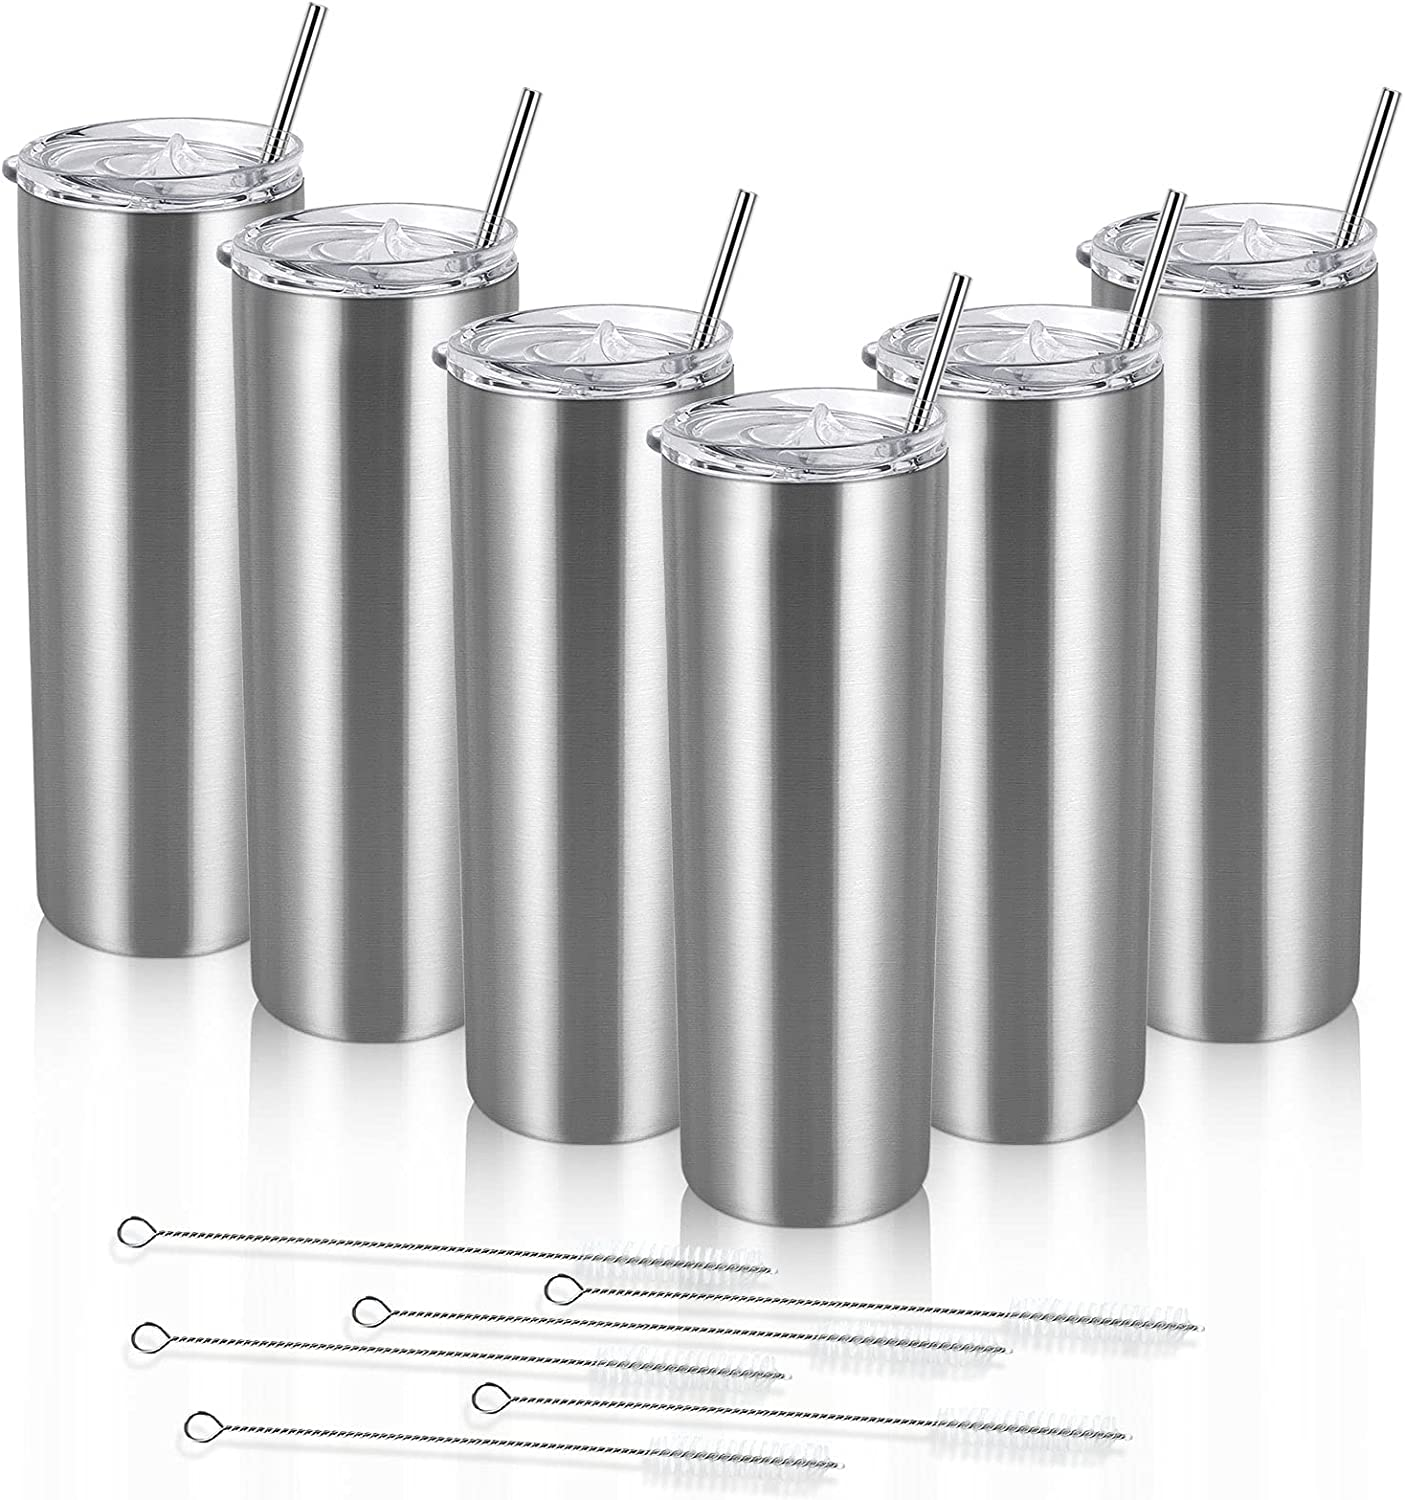 6 Pack Skinny Travel Time sale w Steel Super beauty product restock quality top Tumblers Stainless